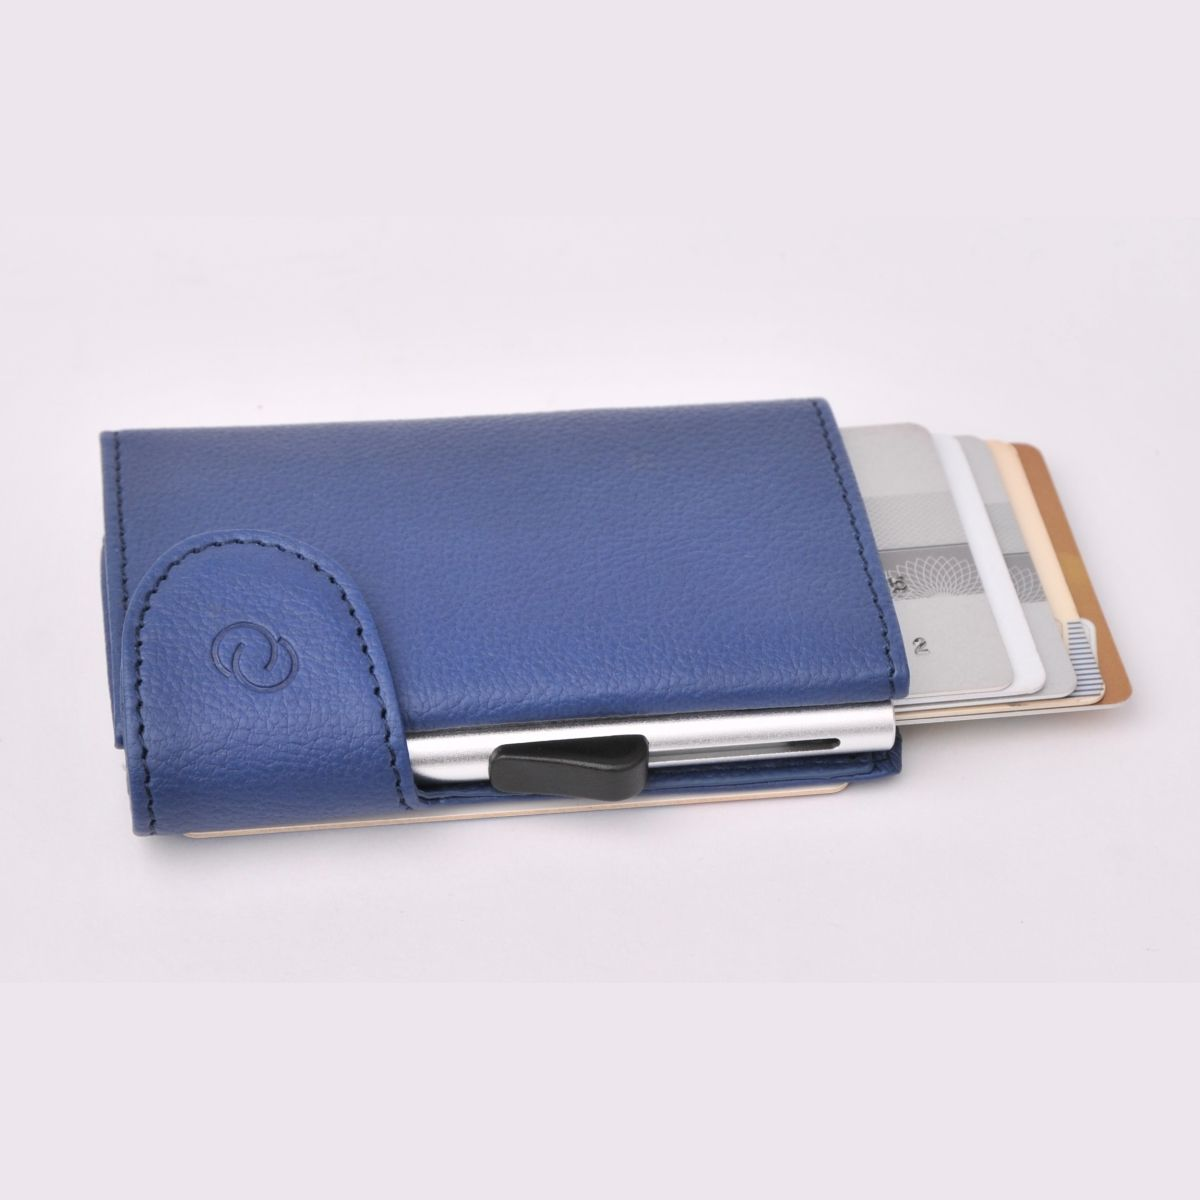 C-Secure Aluminum Card Holder with PU Leather - Blue